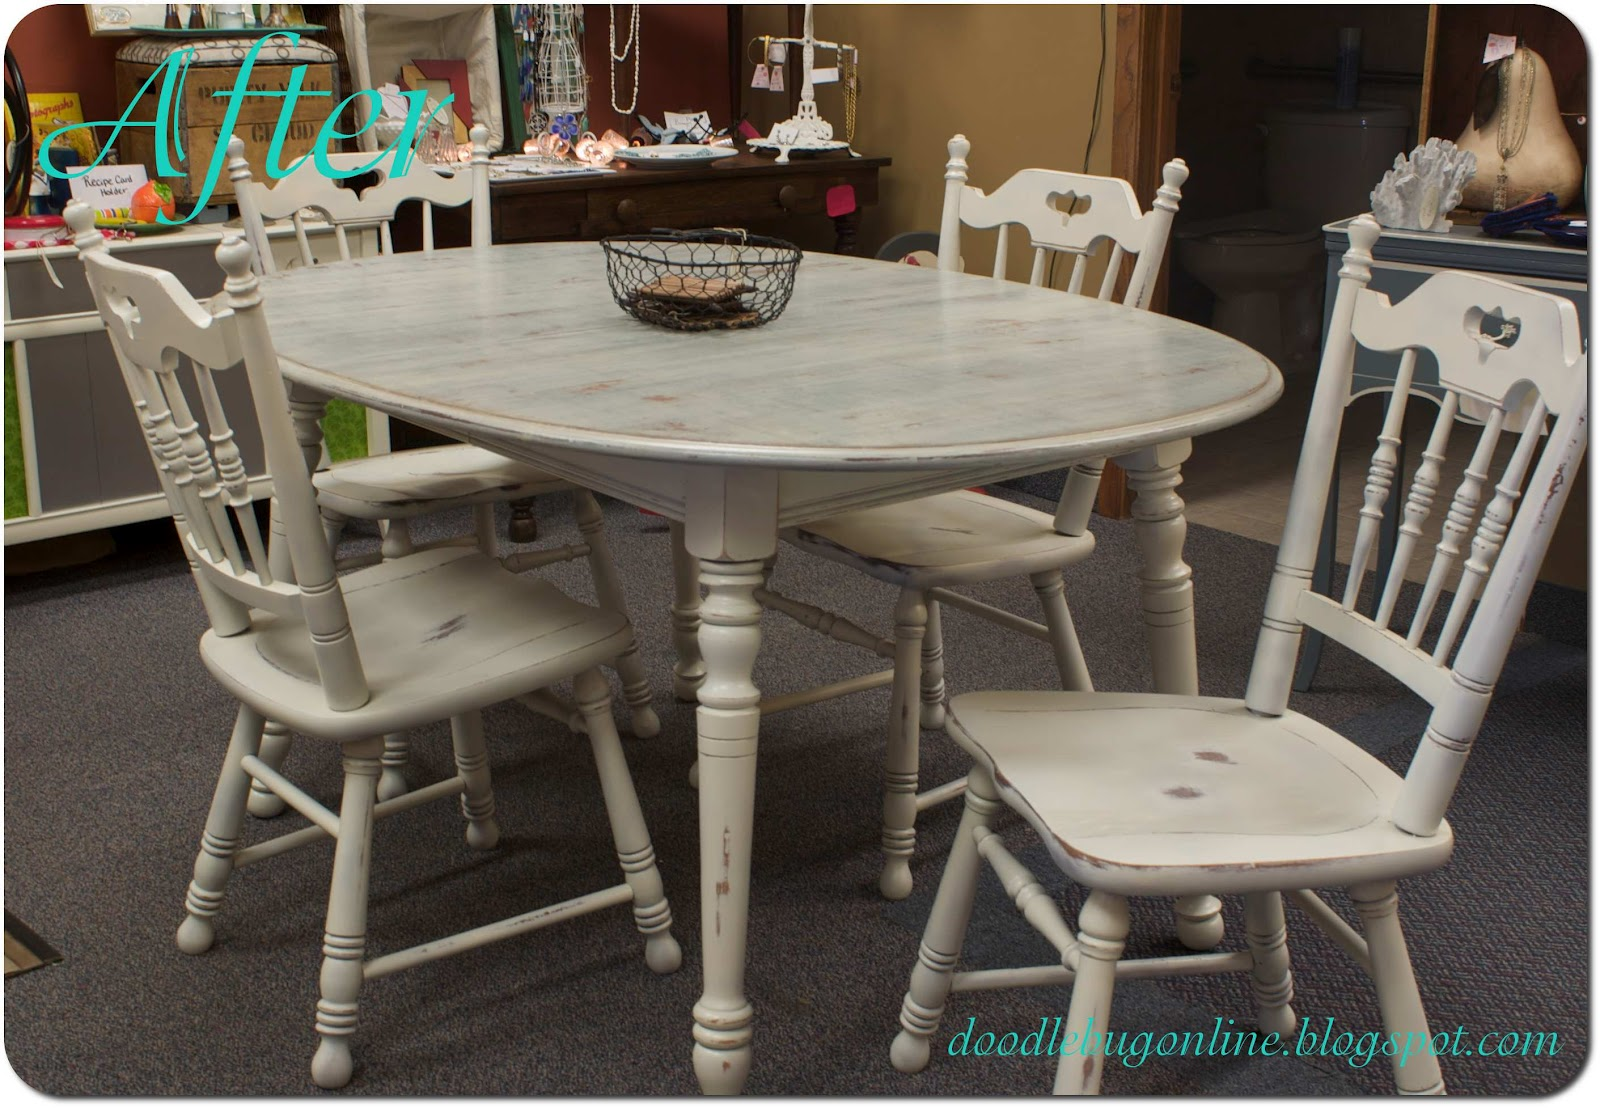 White   Grey Distressed Table   Chairs. Doodle Bug  White   Grey Distressed Table   Chairs